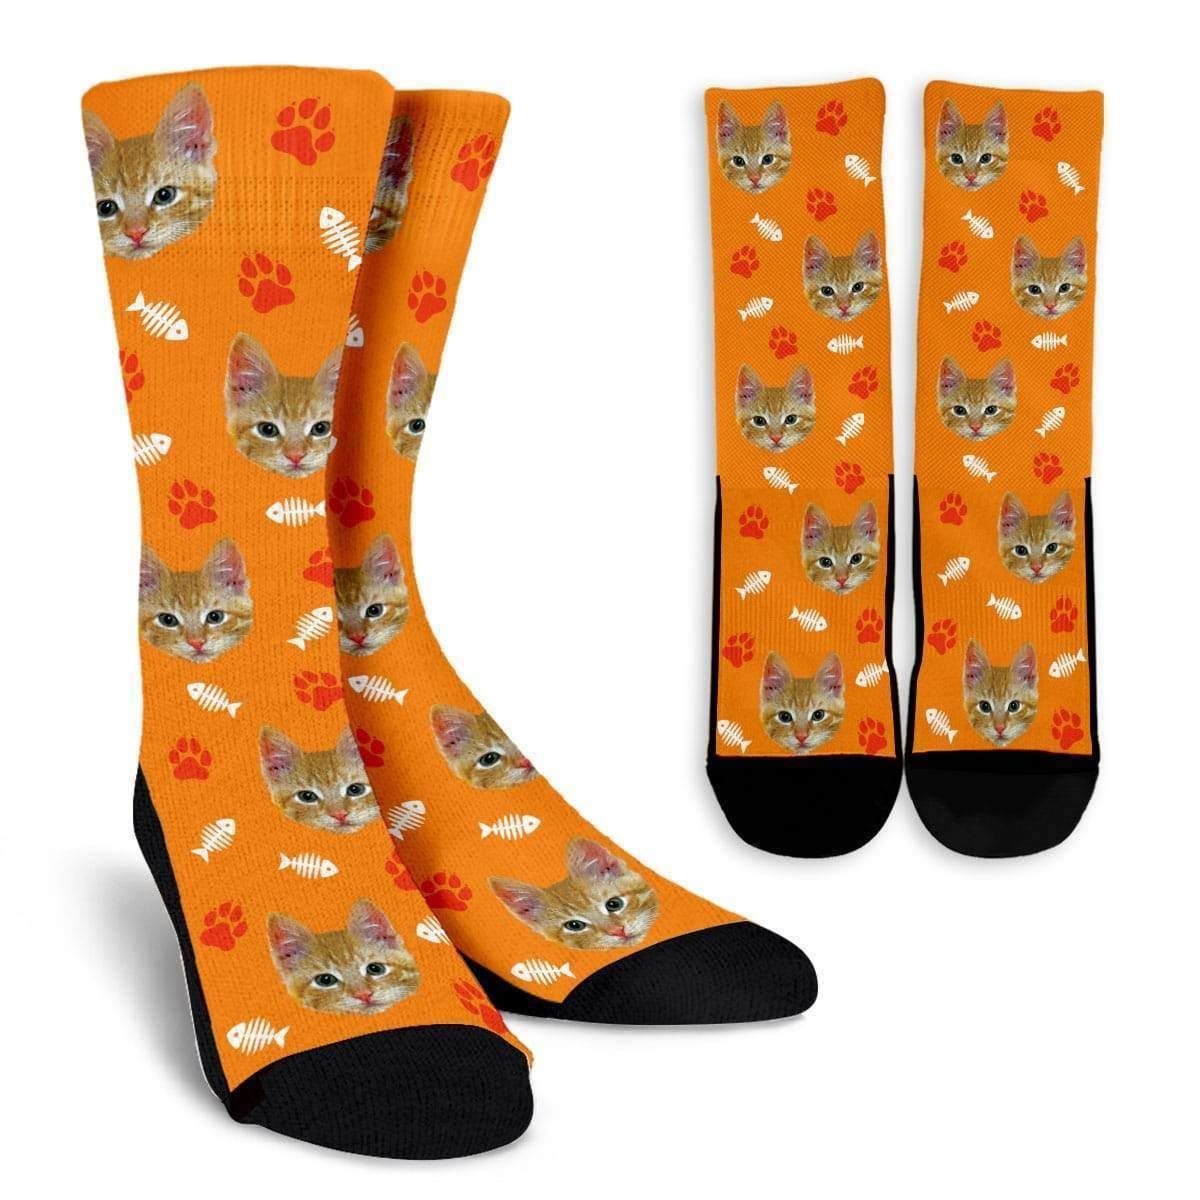 Custom Cat Socks (Best Seller) Cat lover gifts, Socks, Cats